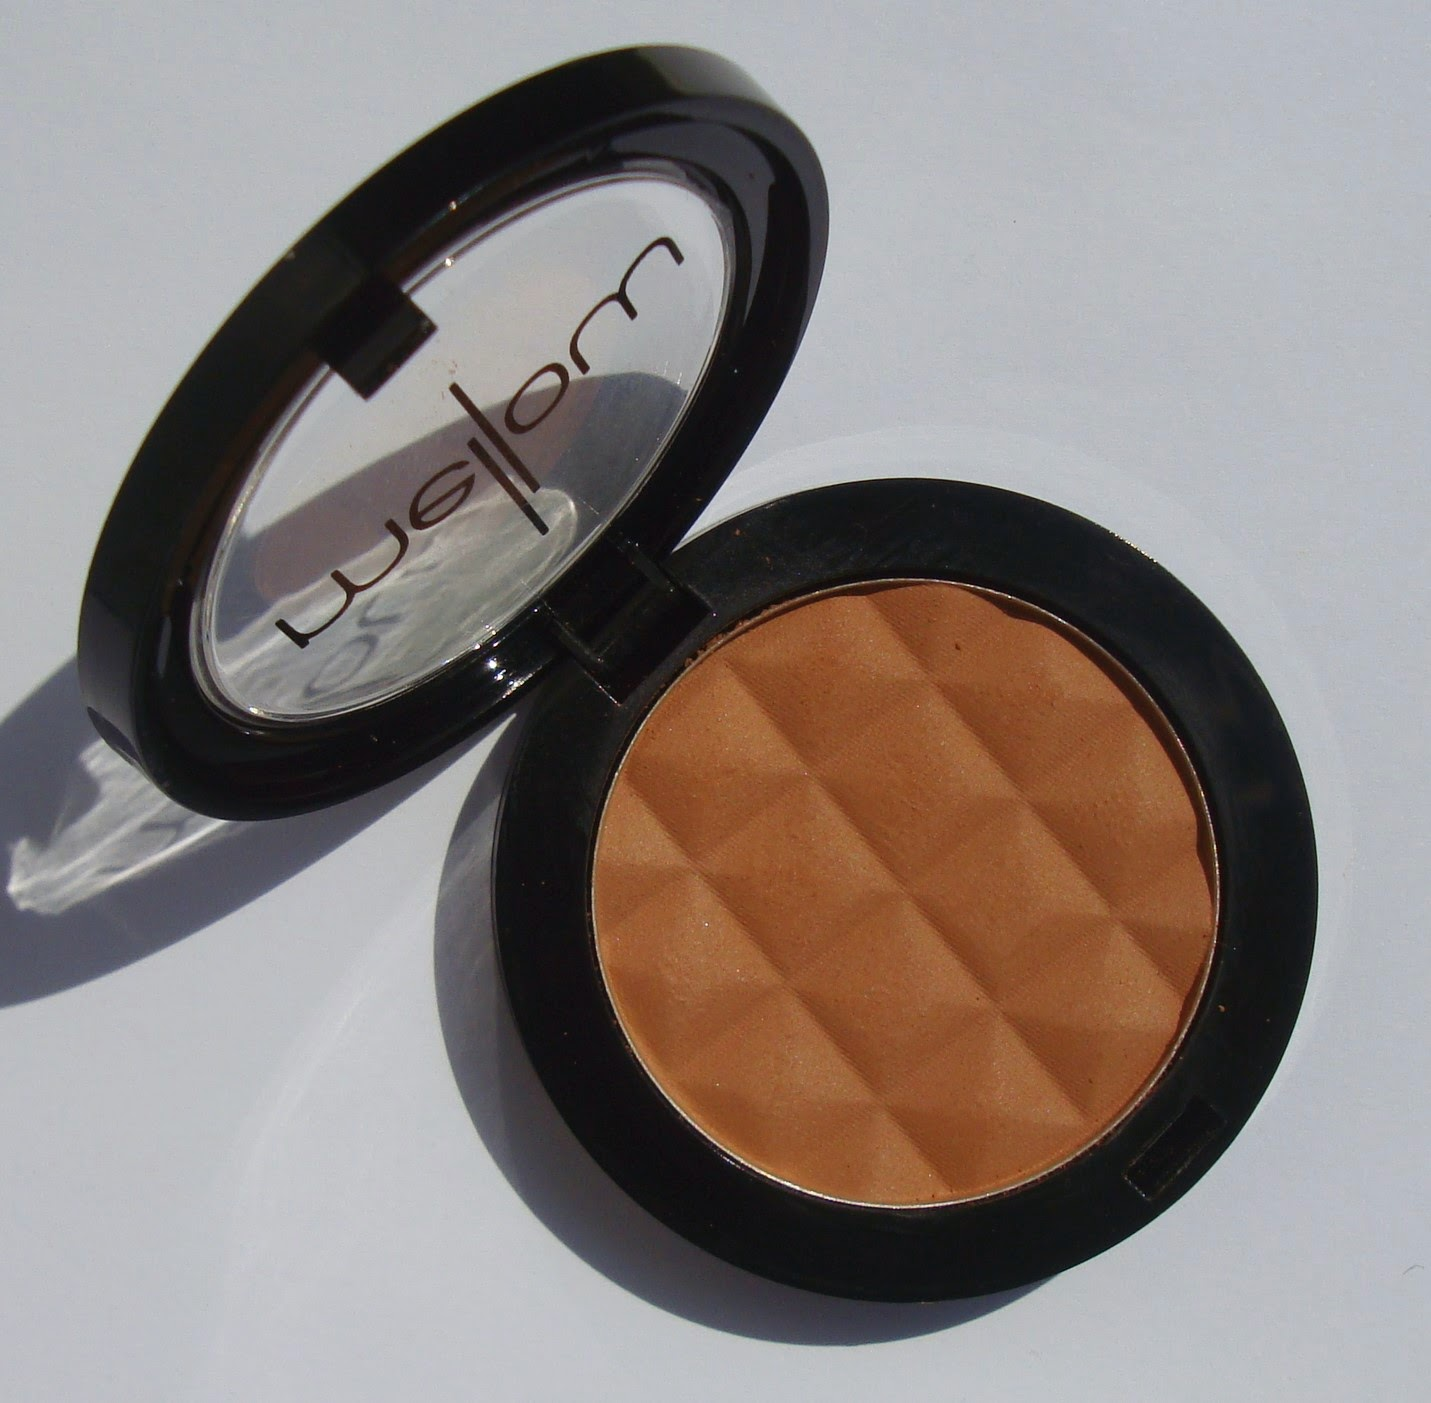 little white truths: Mellow Cosmetics Blush in Bronze - review